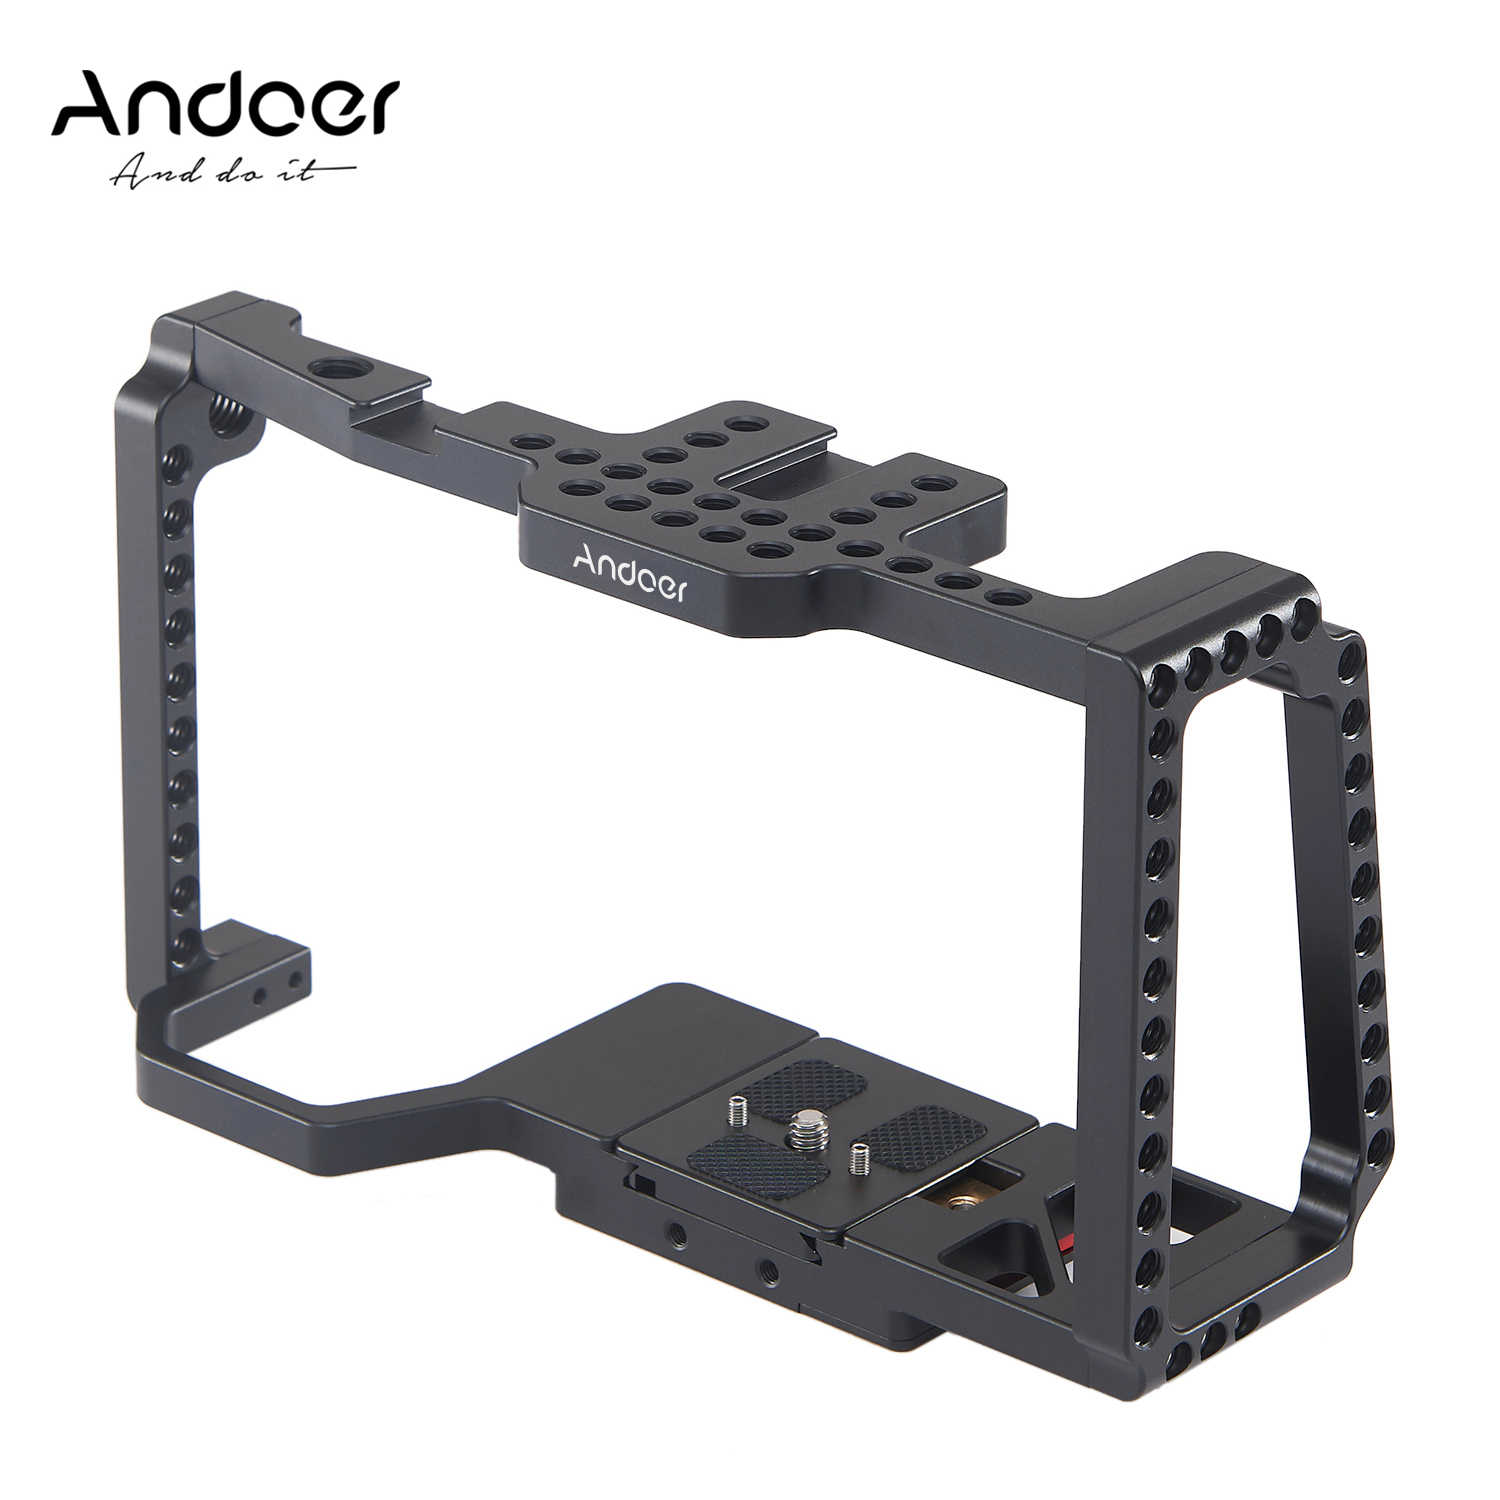 Andoer Camera Kooi Video Film Movie Kooi met Quick Release Plaat Voor Blackmagic Pocket Cinema Camera 4 K/6 K BMPCC 4K 6K